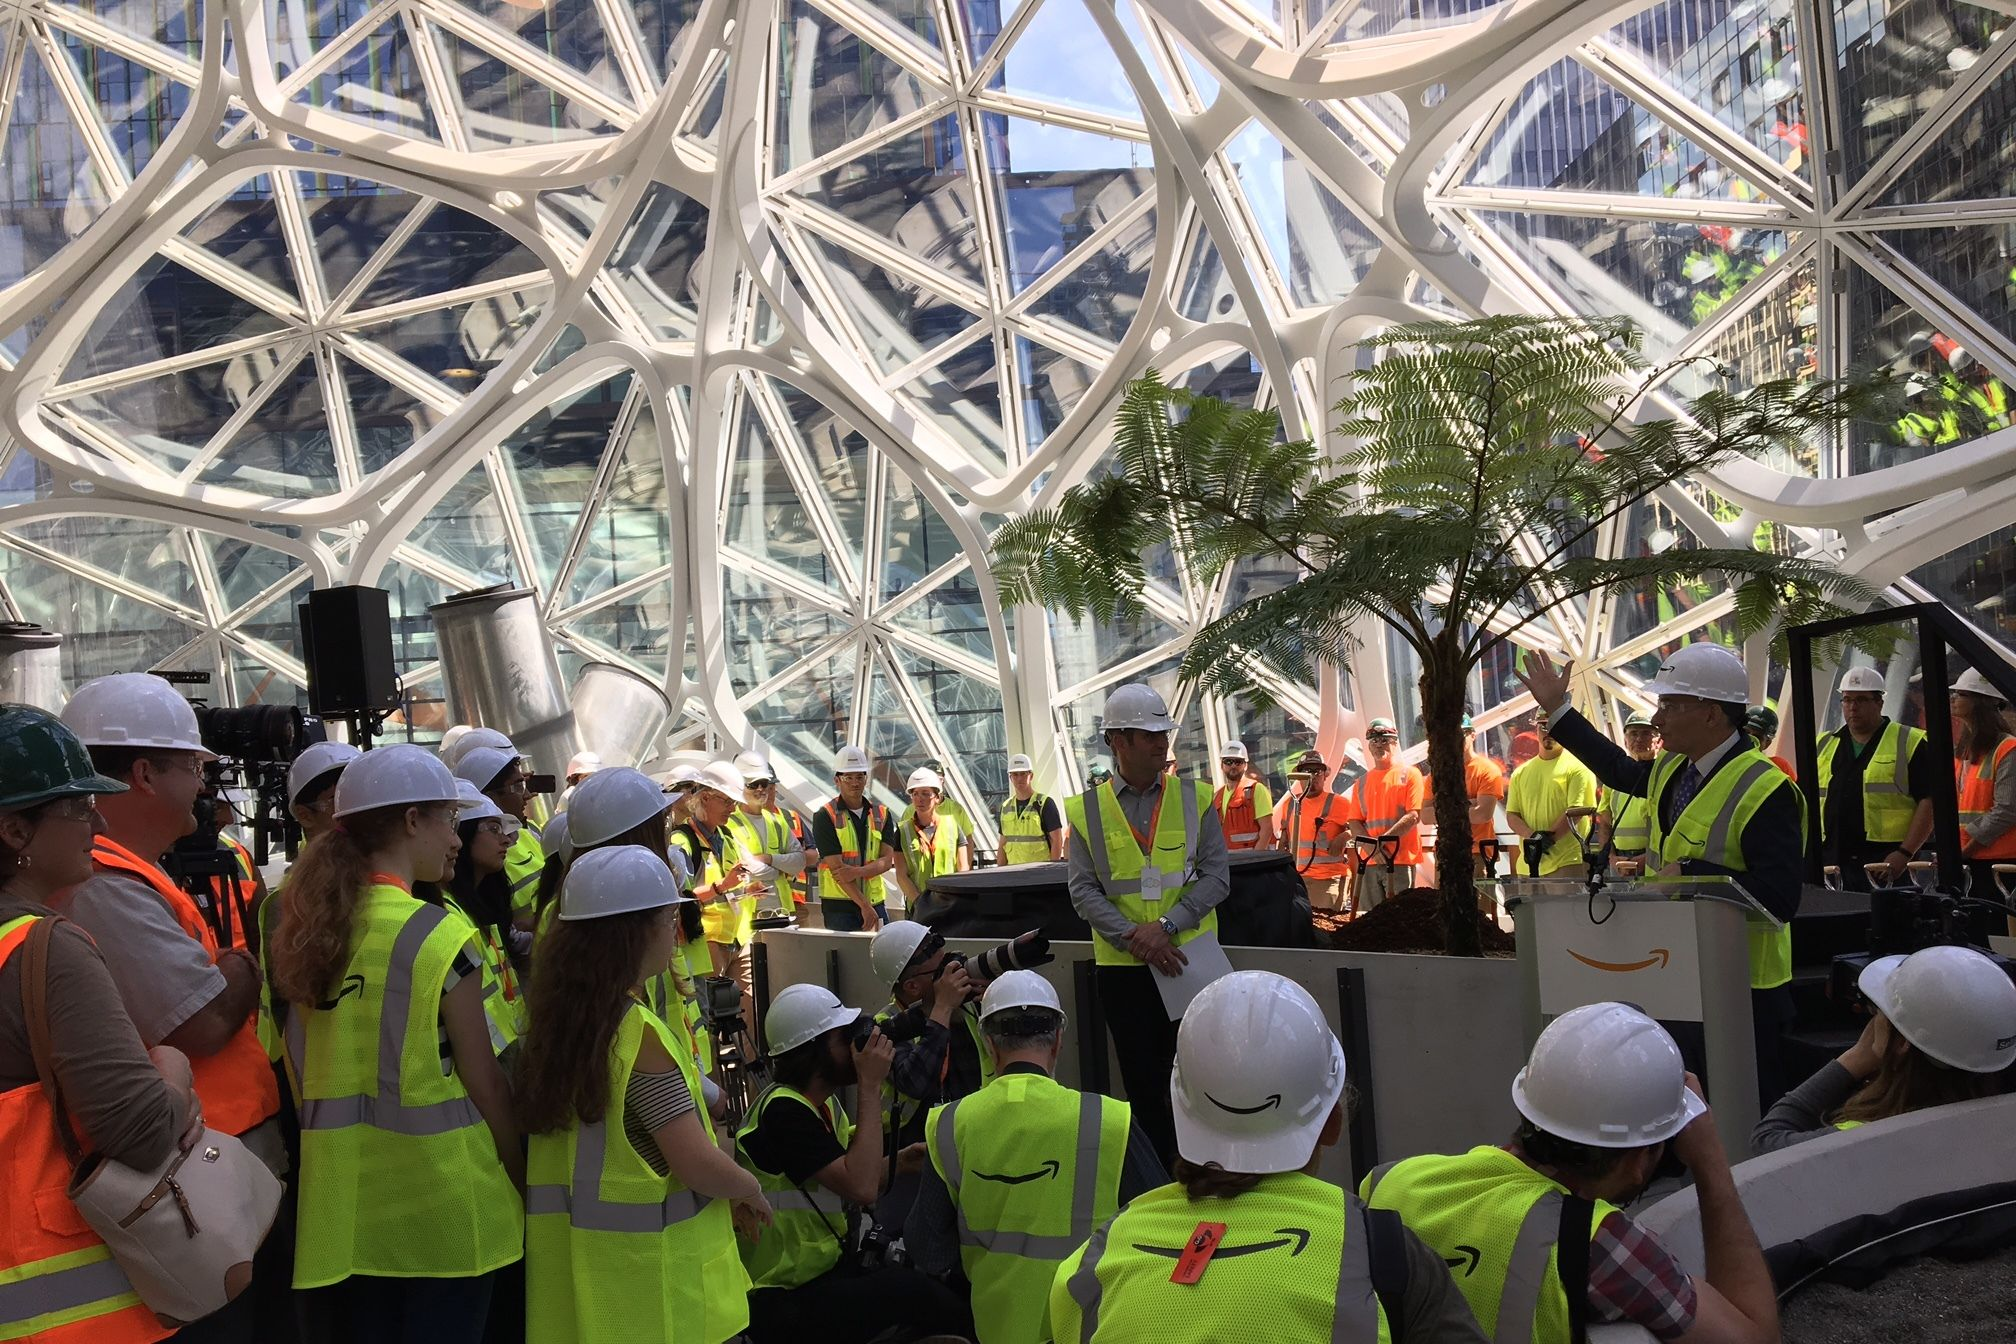 Amazon spheres announcement dow constantine 050417 rv2utb